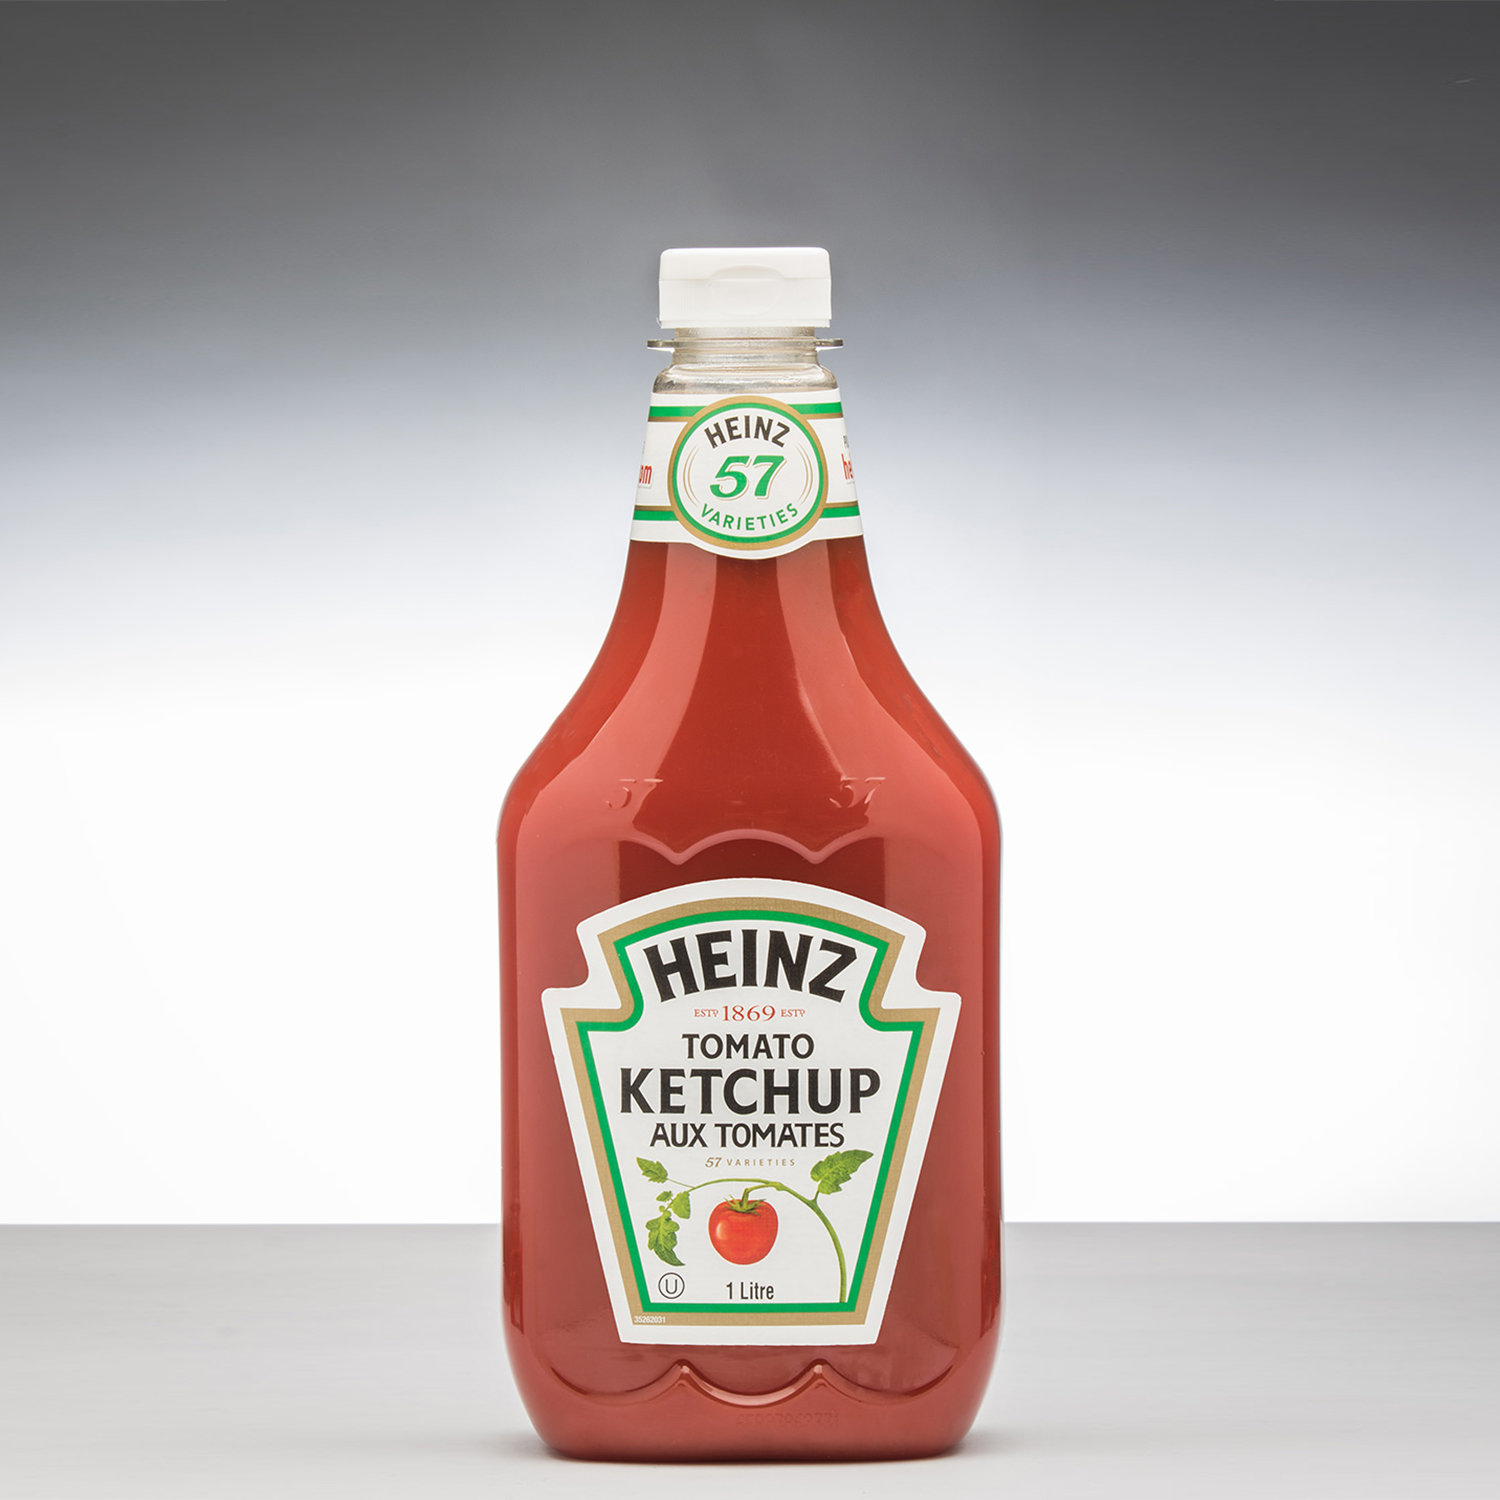 KETCHUP PRODUCT PHOTOGRAPHY